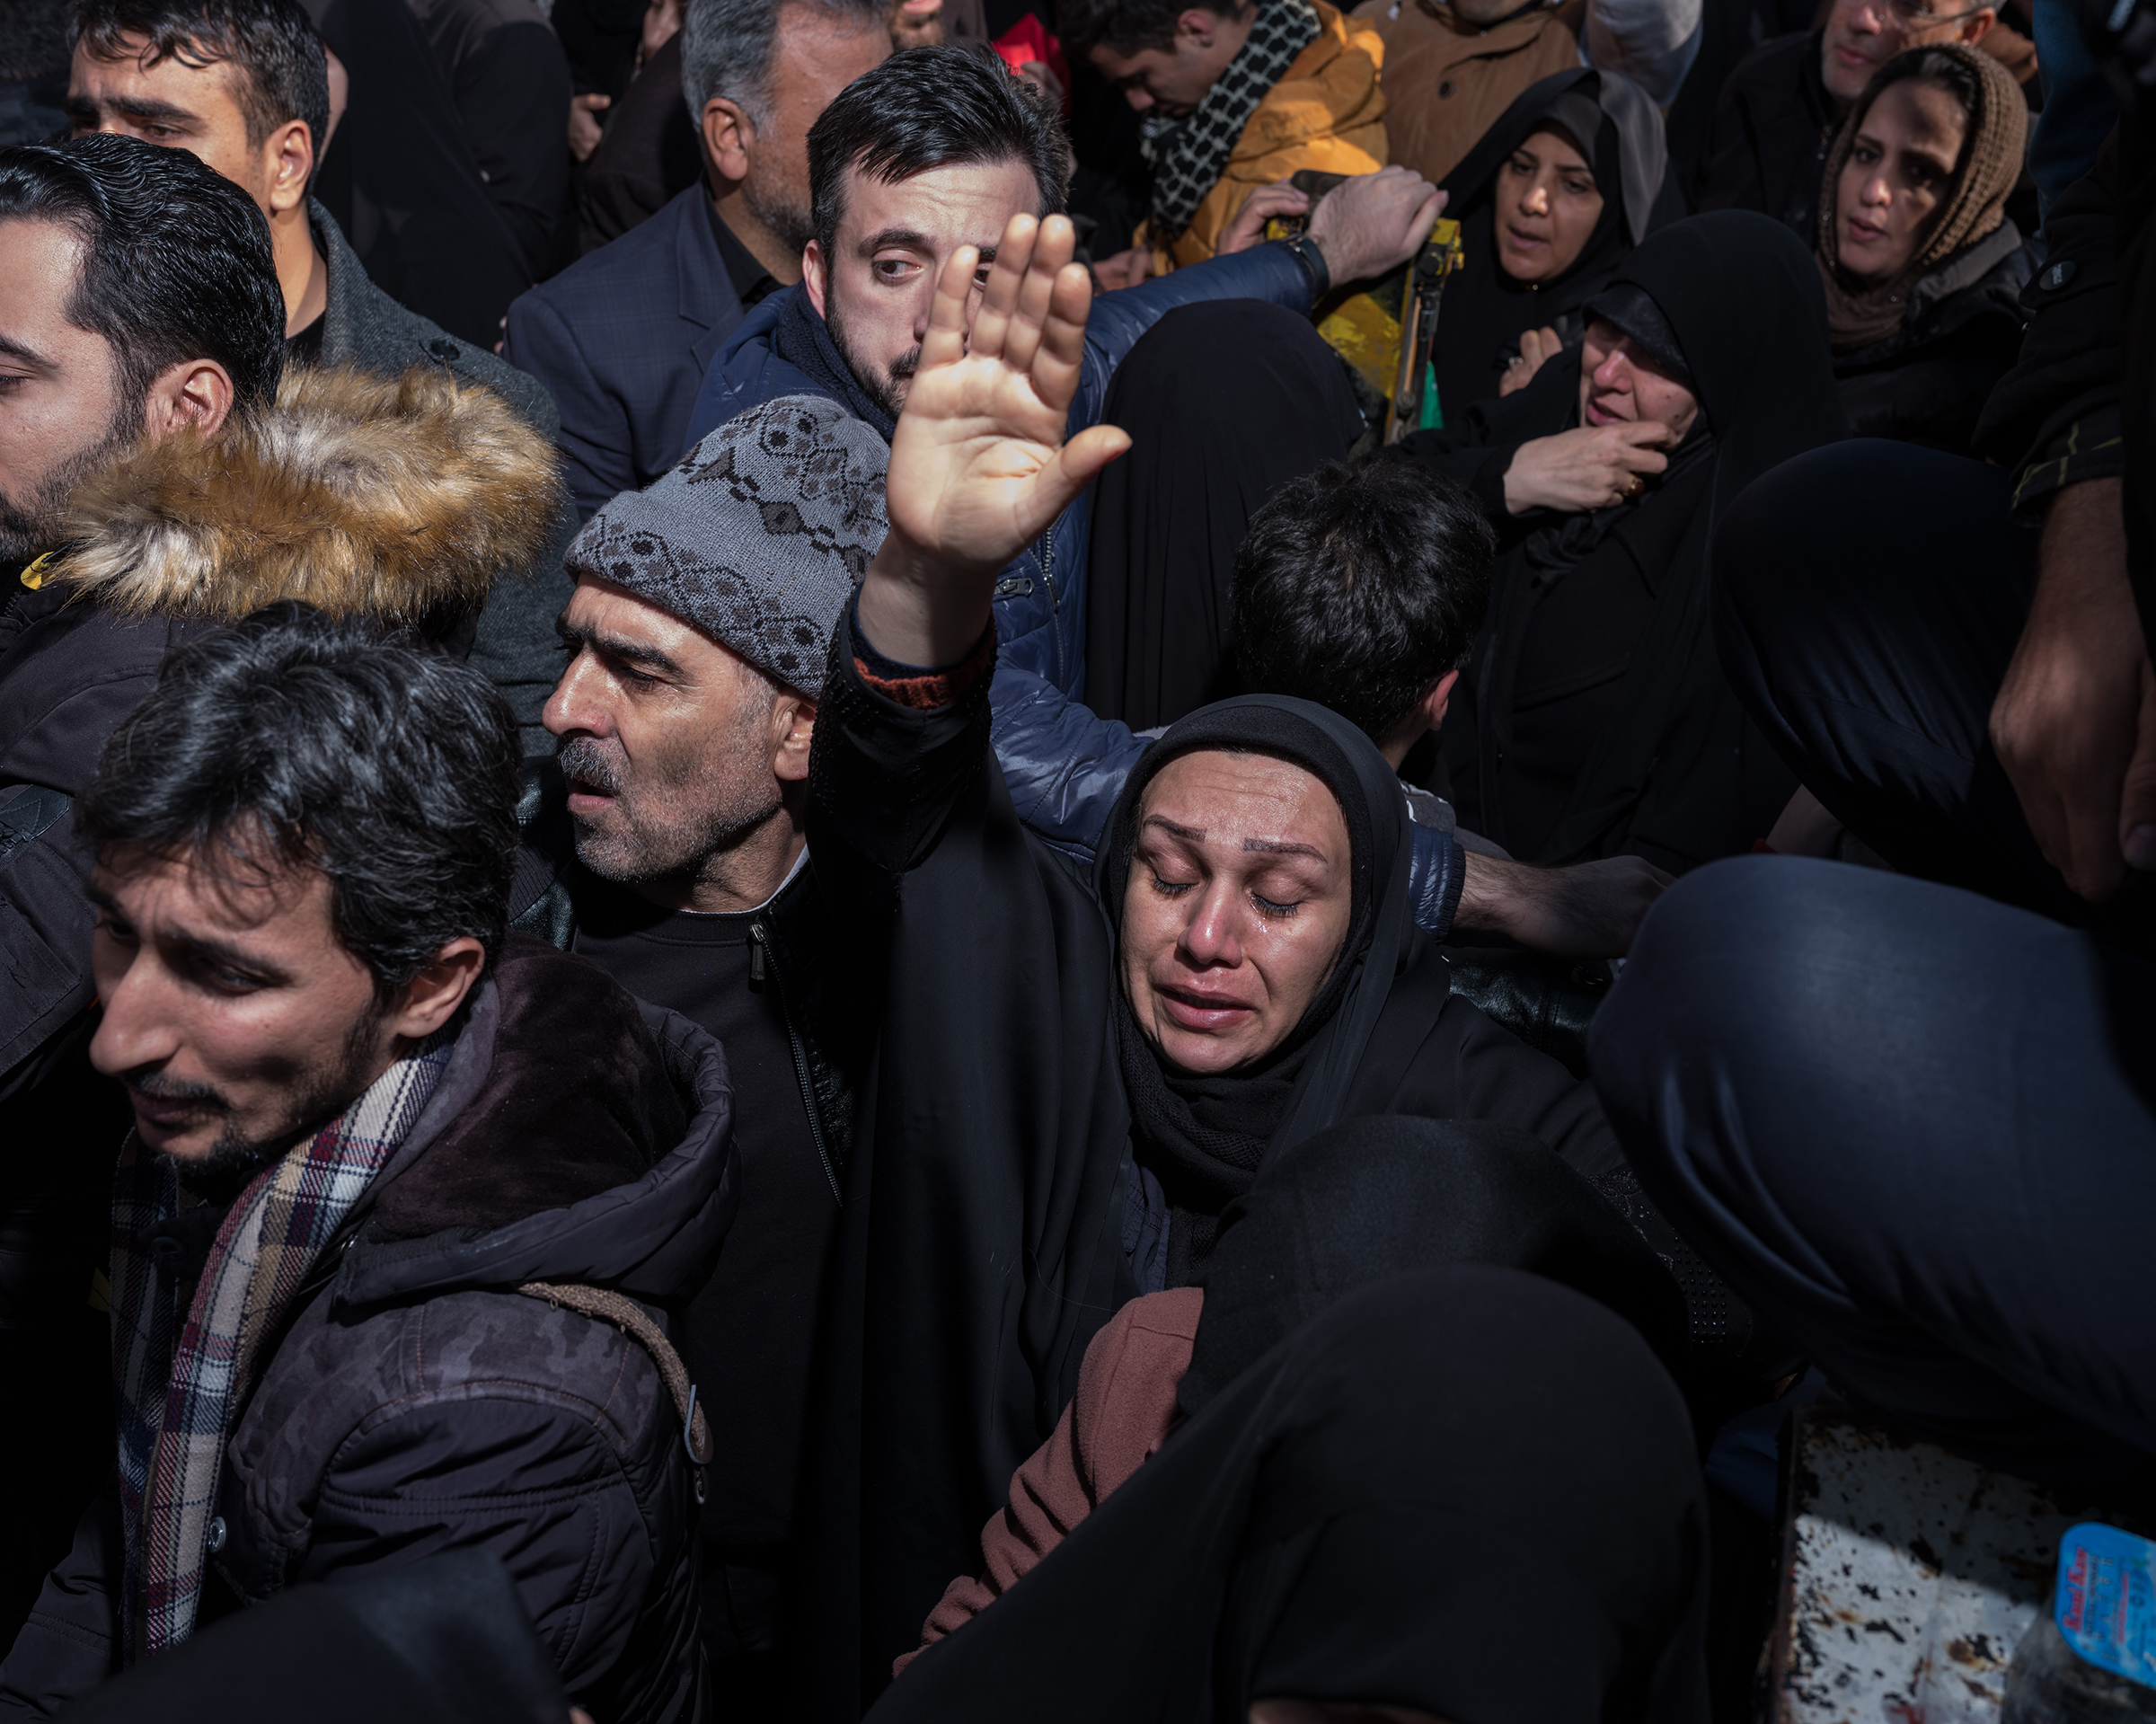 A woman raises her hand in a group of mourners.